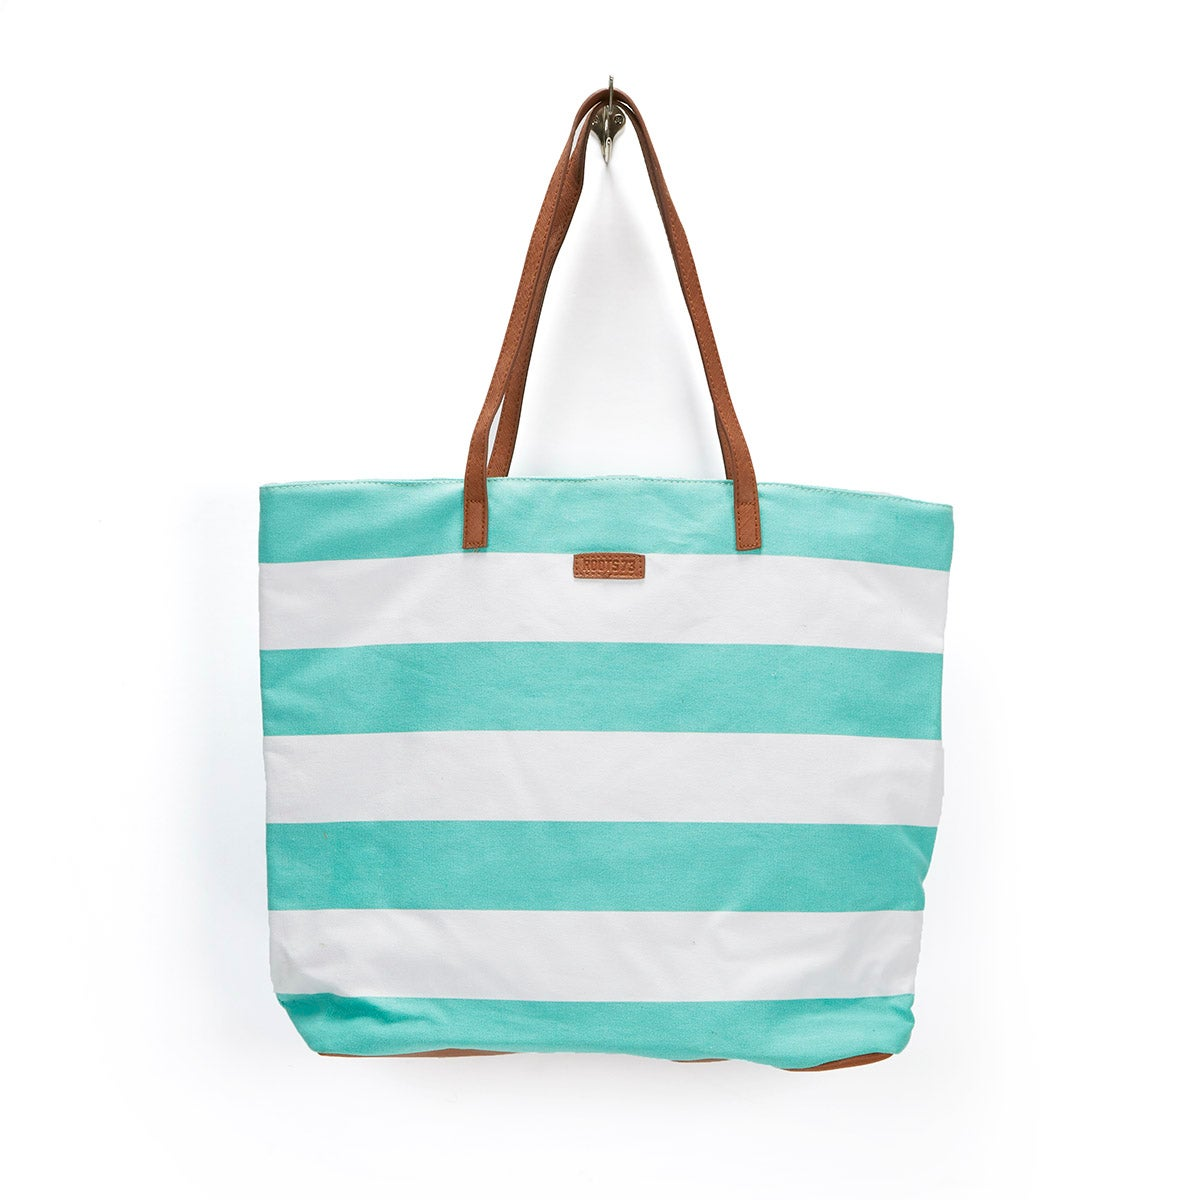 Lds mint/white large striped tote bag